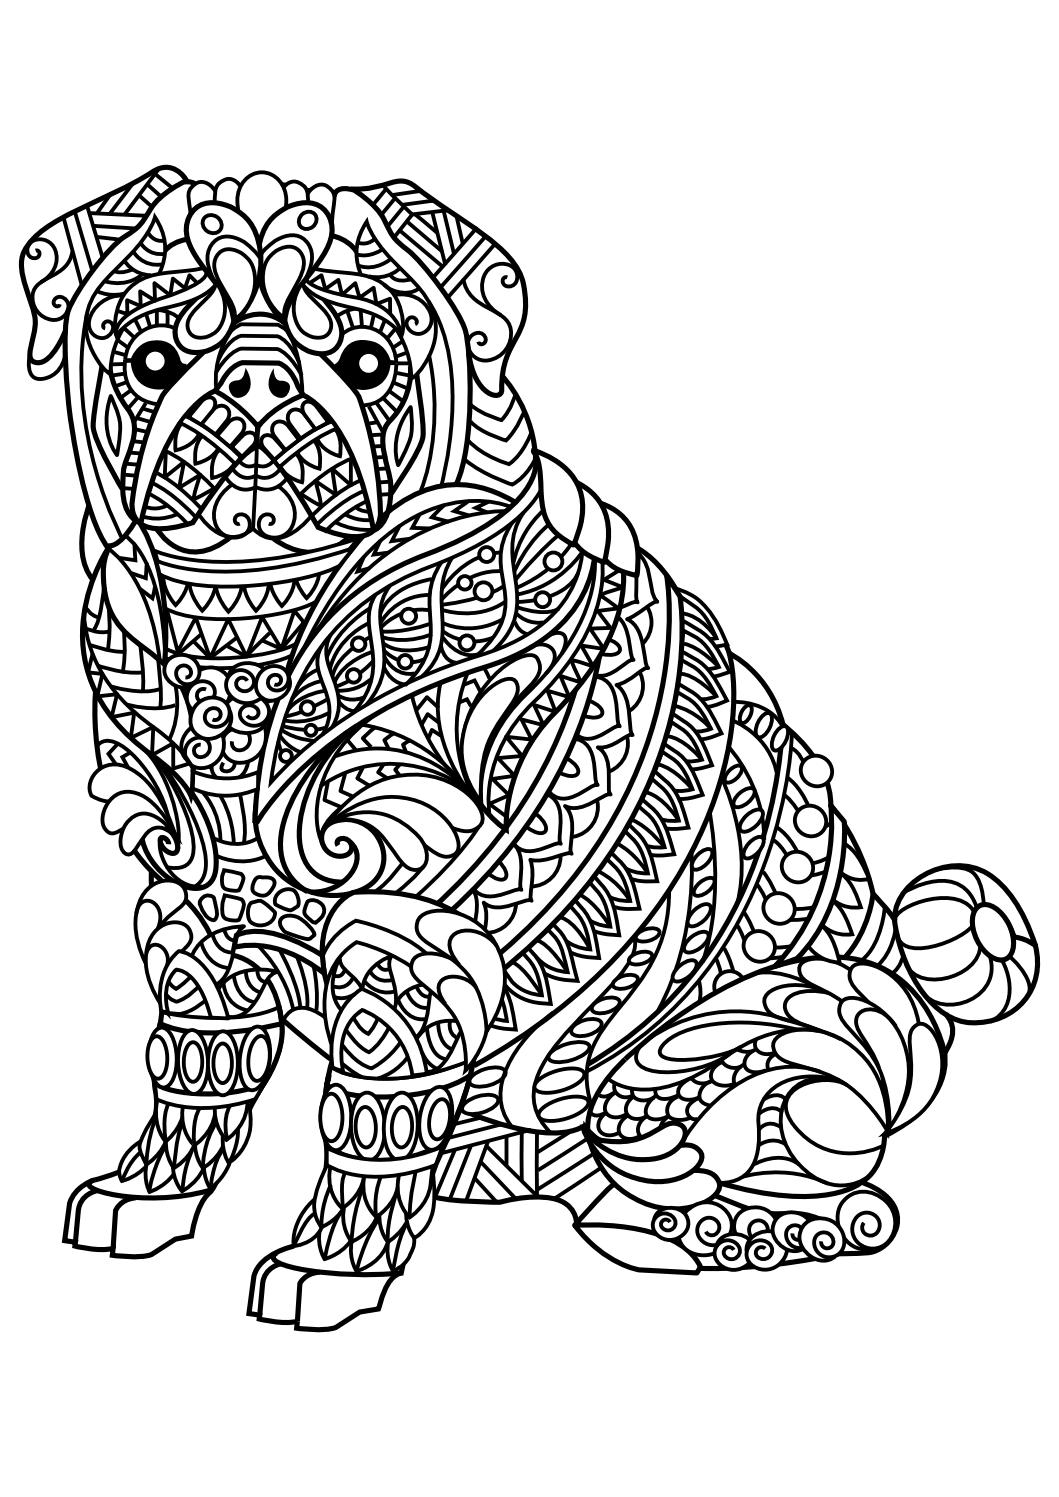 advanced animal coloring pages inspirant coloriage pour adulte animaux meilleur coloring advanced animal pages